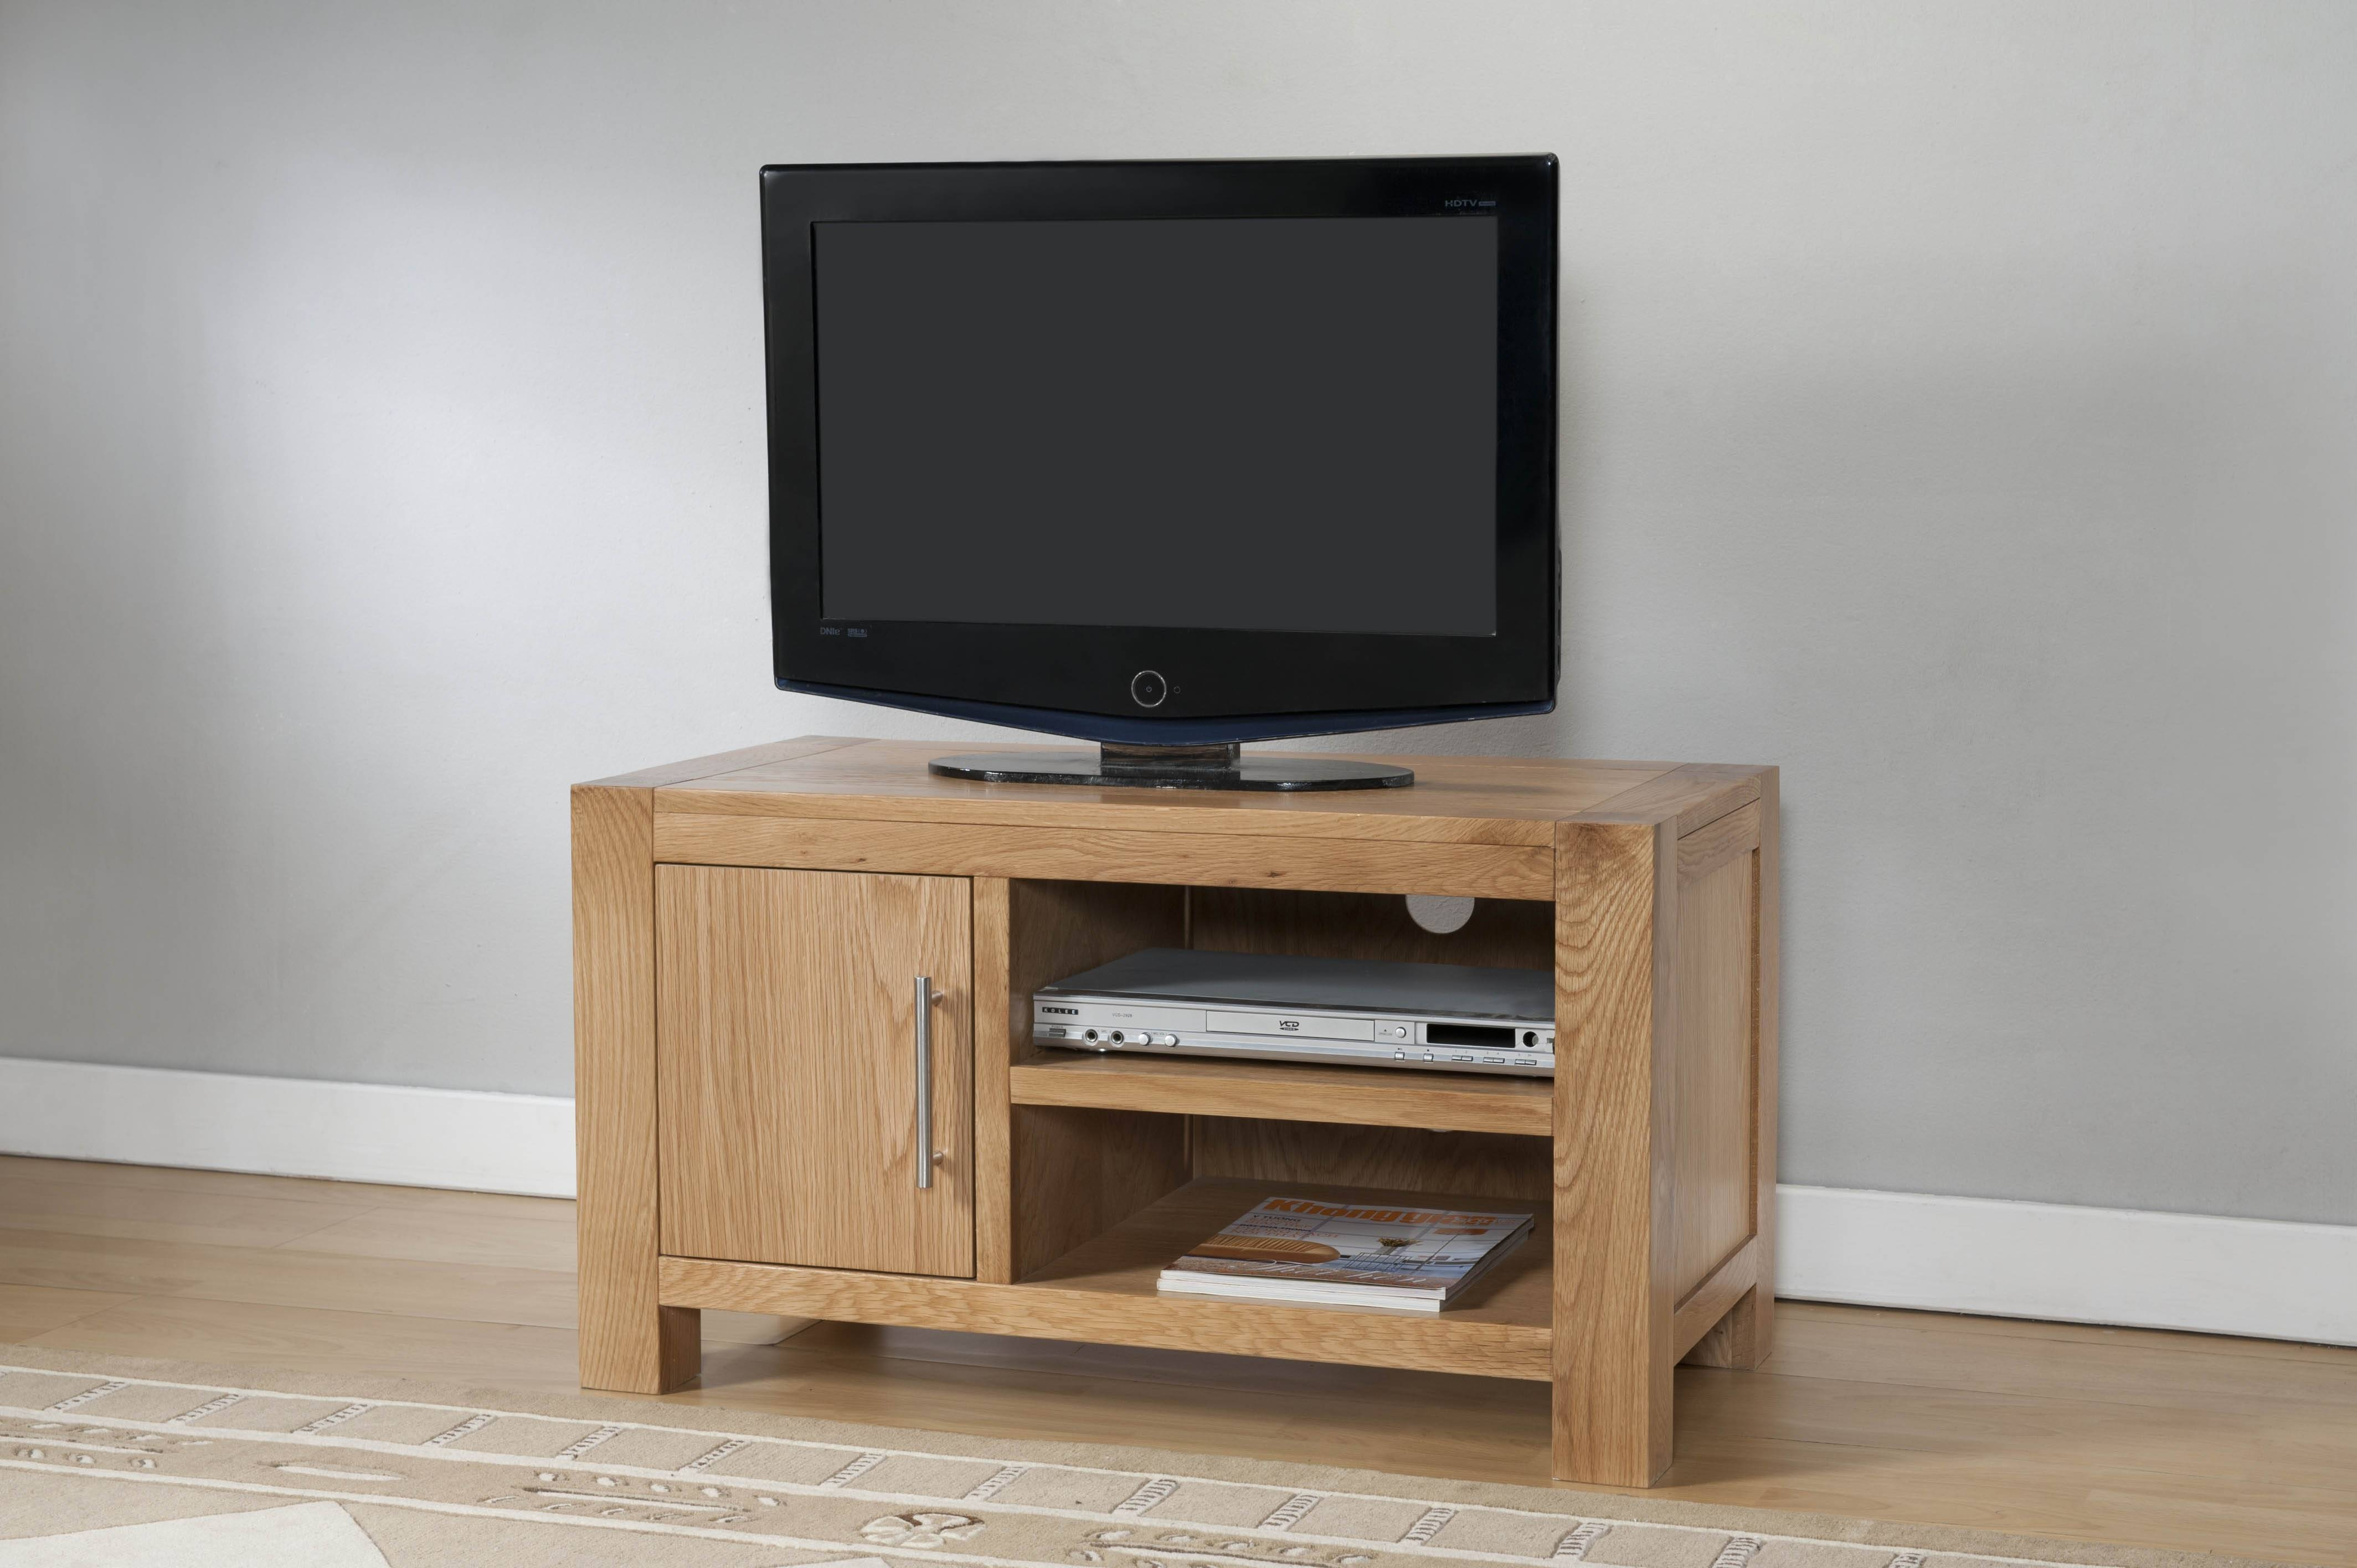 Milano Oak 1 Door Tv Stand With Shelf | Oak Furniture Solutions in Light Oak Tv Cabinets (Image 7 of 15)